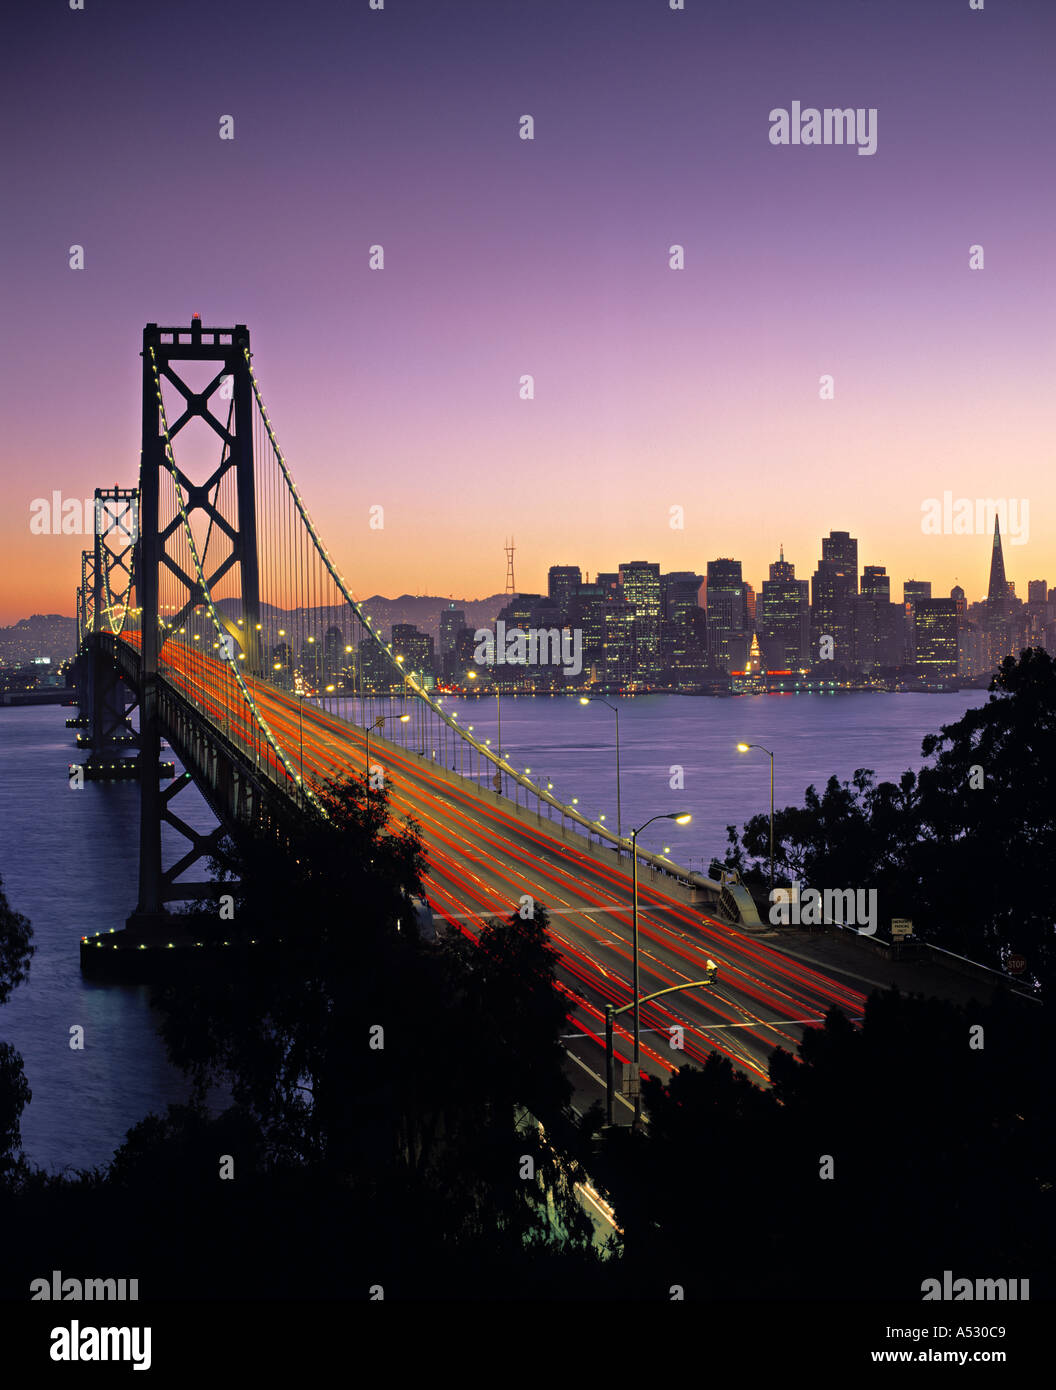 Oakland Bay Bridge, San Francisco, California, USA Banque D'Images